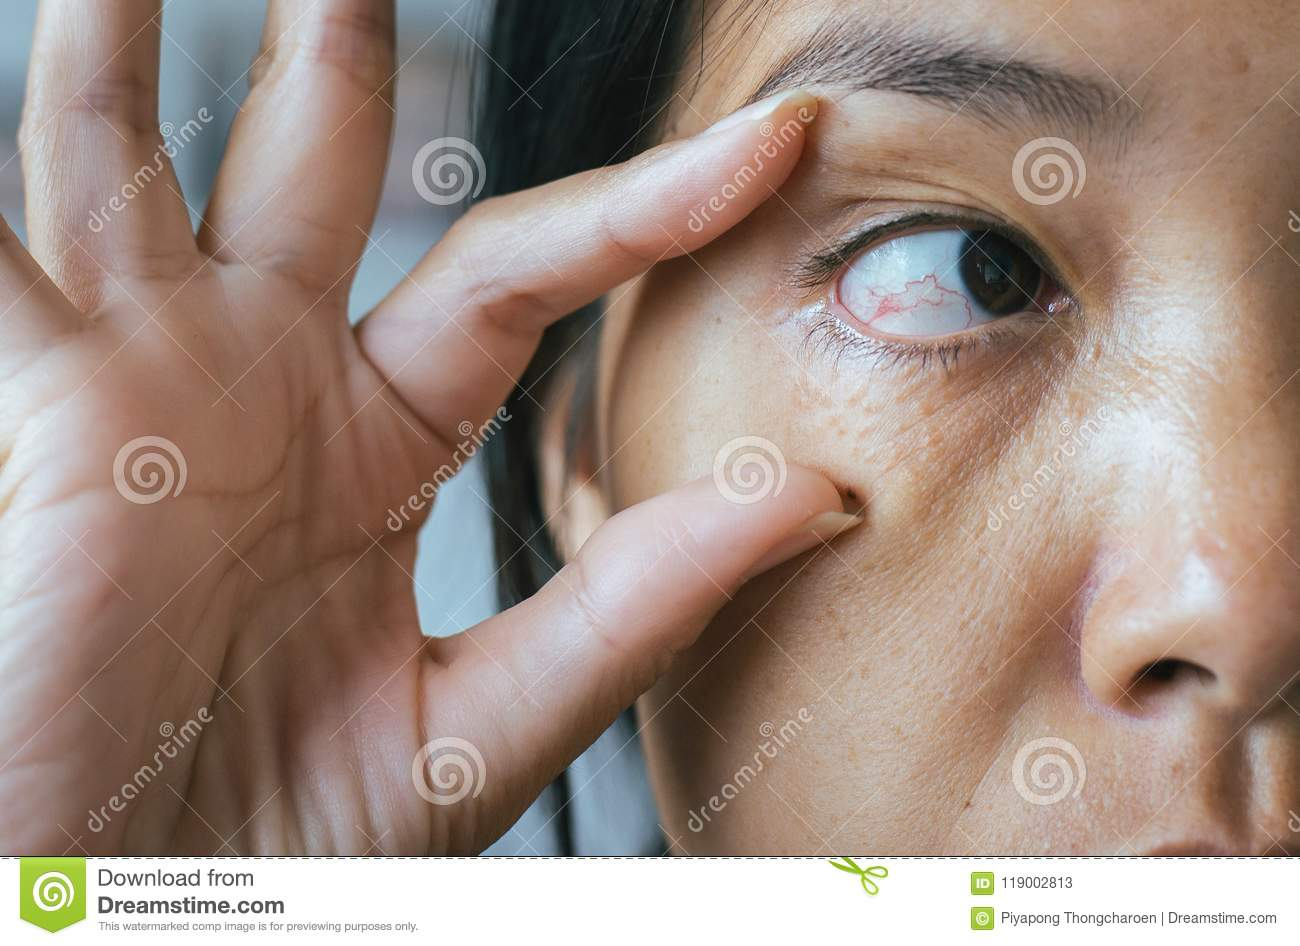 Veins On Red Eye Asian Woman,Eyelid Layer,Causes The Use Of Eyes And